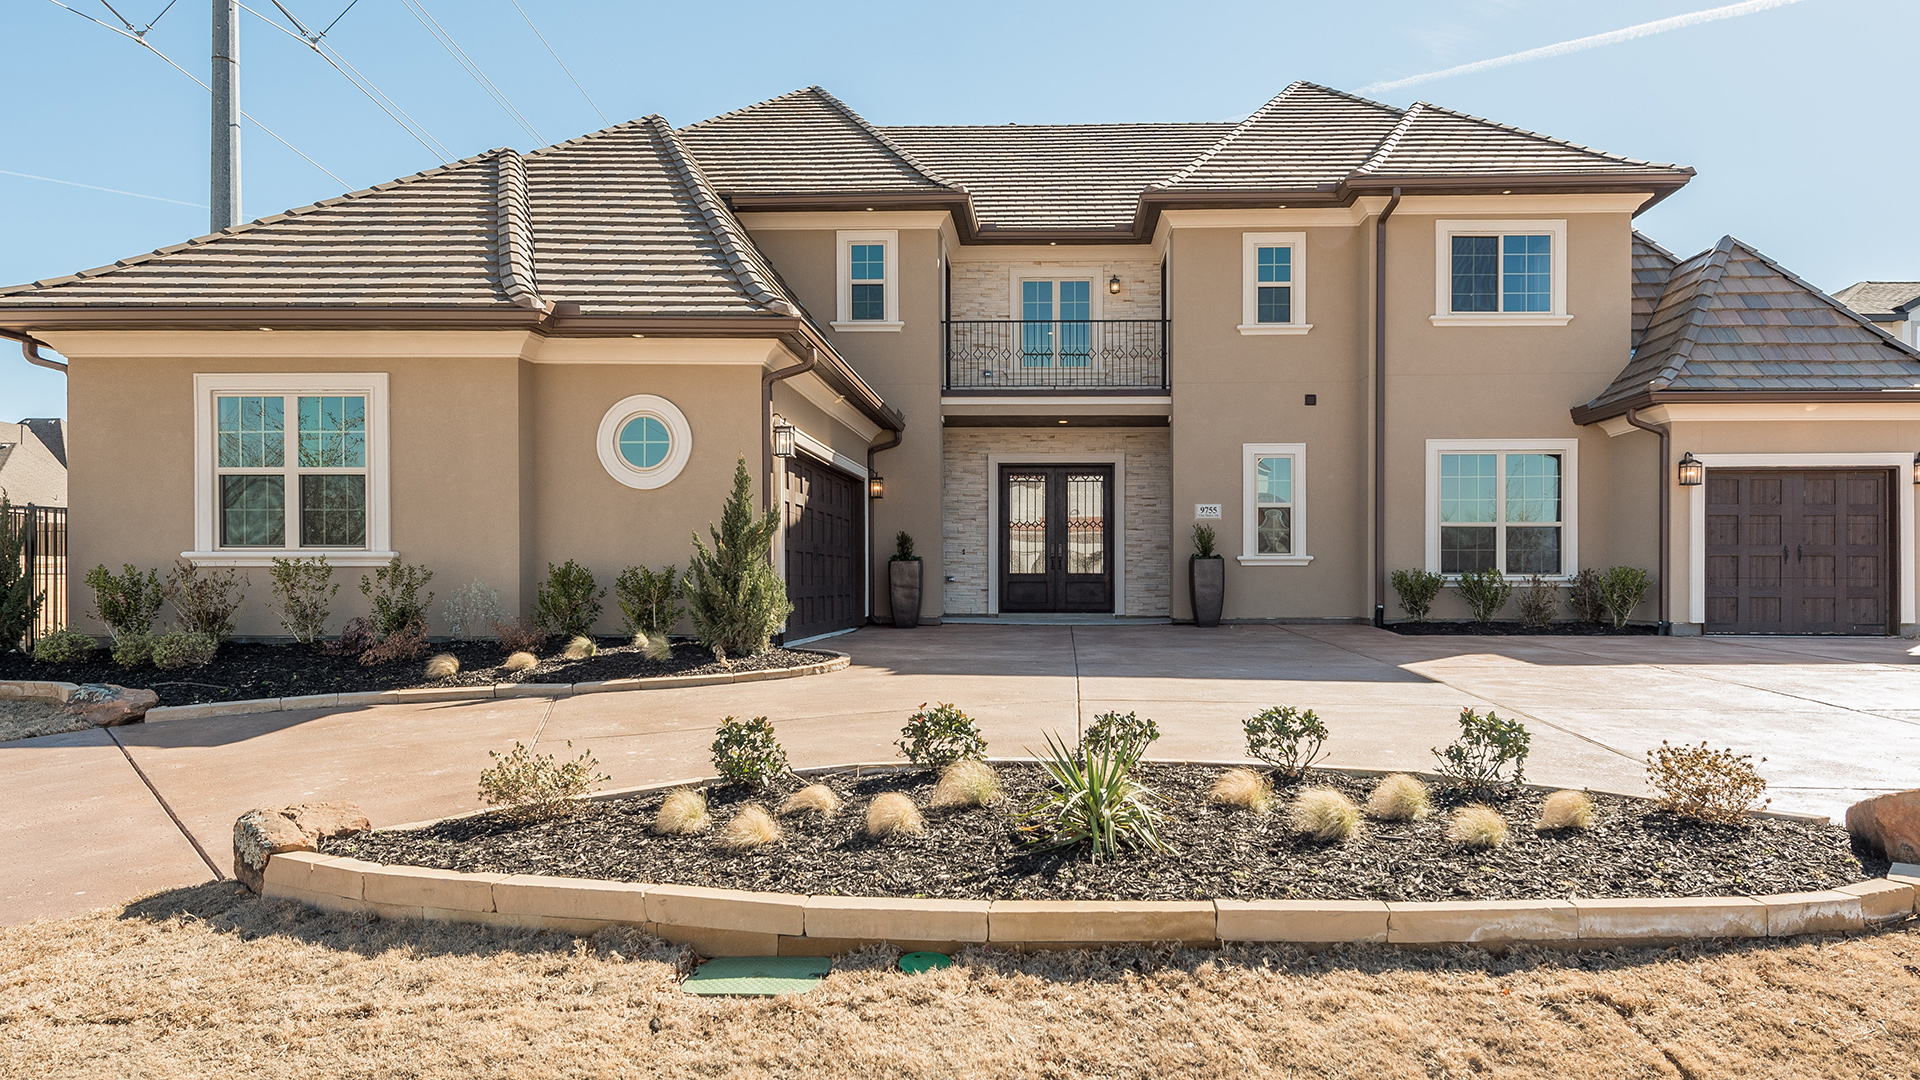 The Montpellier Versailles - Available for Immediate Move-In